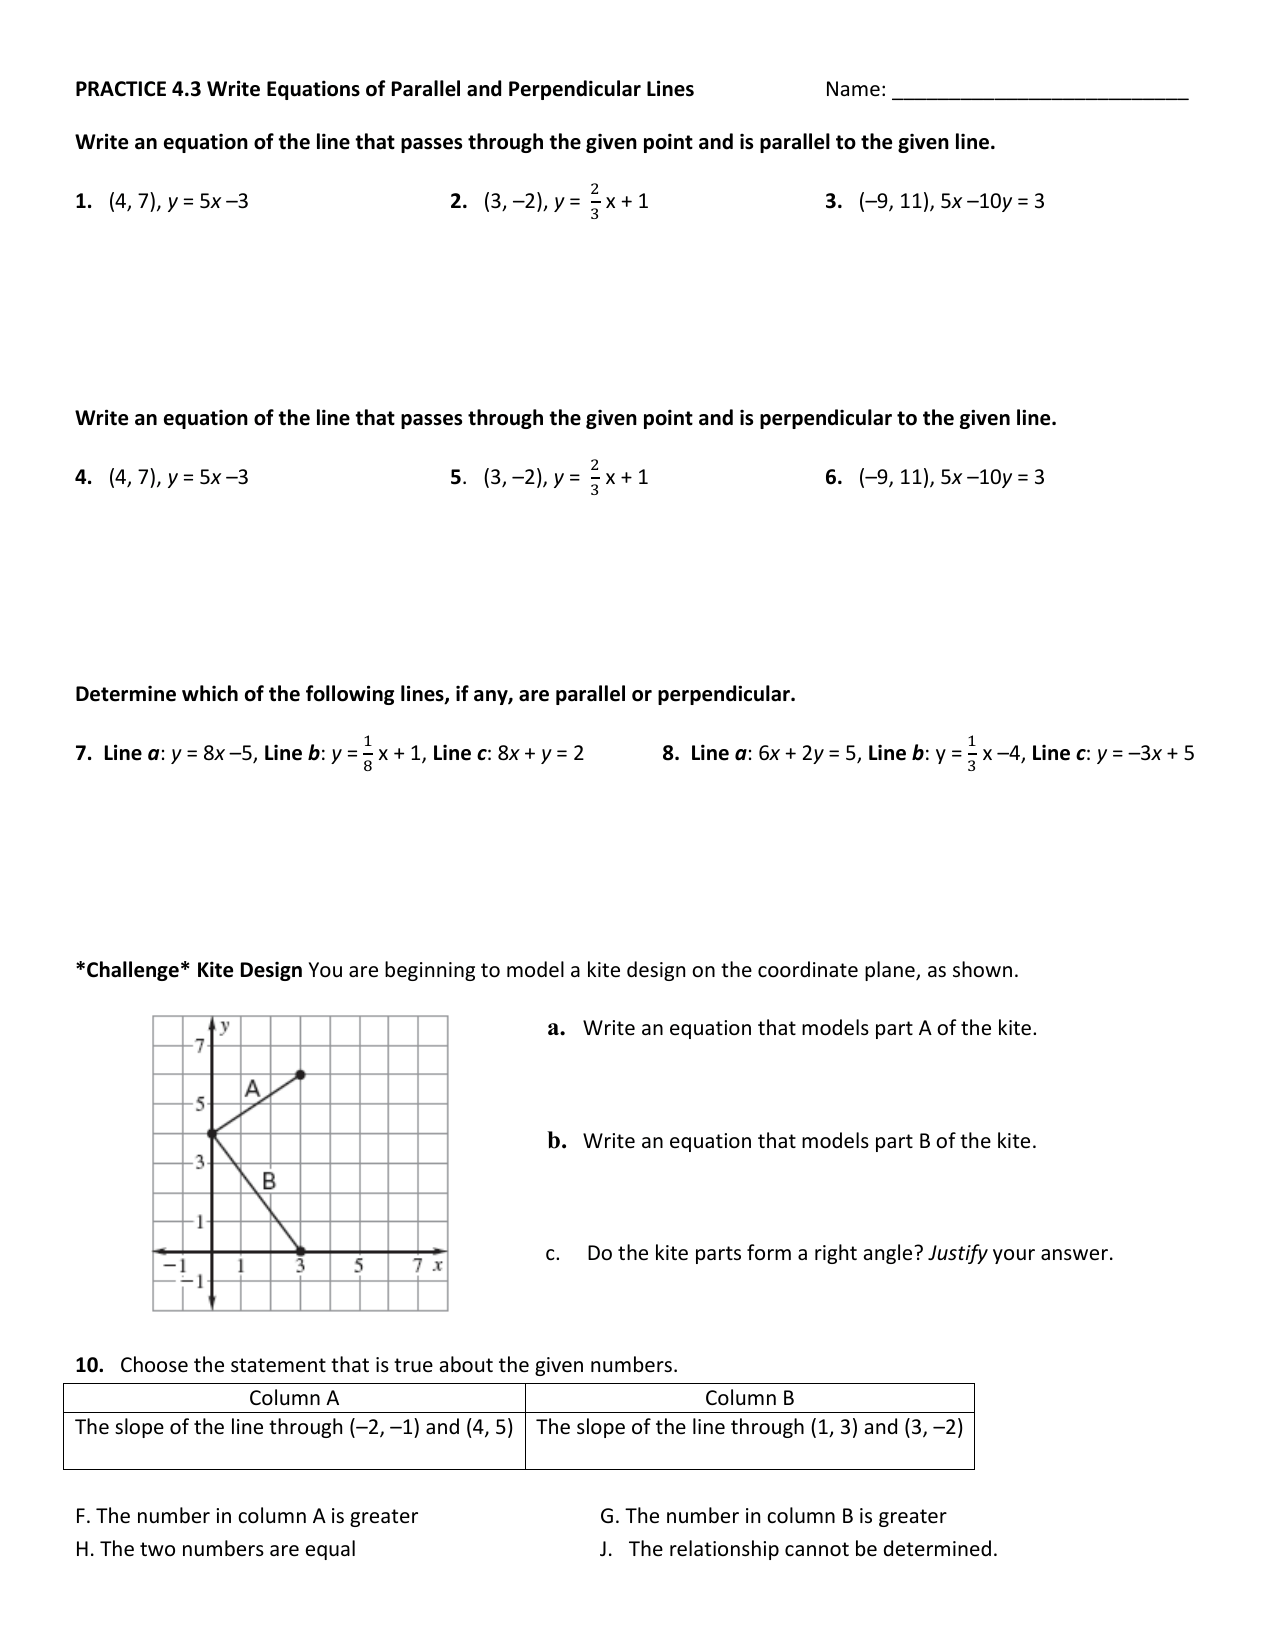 Writing Equations Of Lines Parallel And Perpendicular